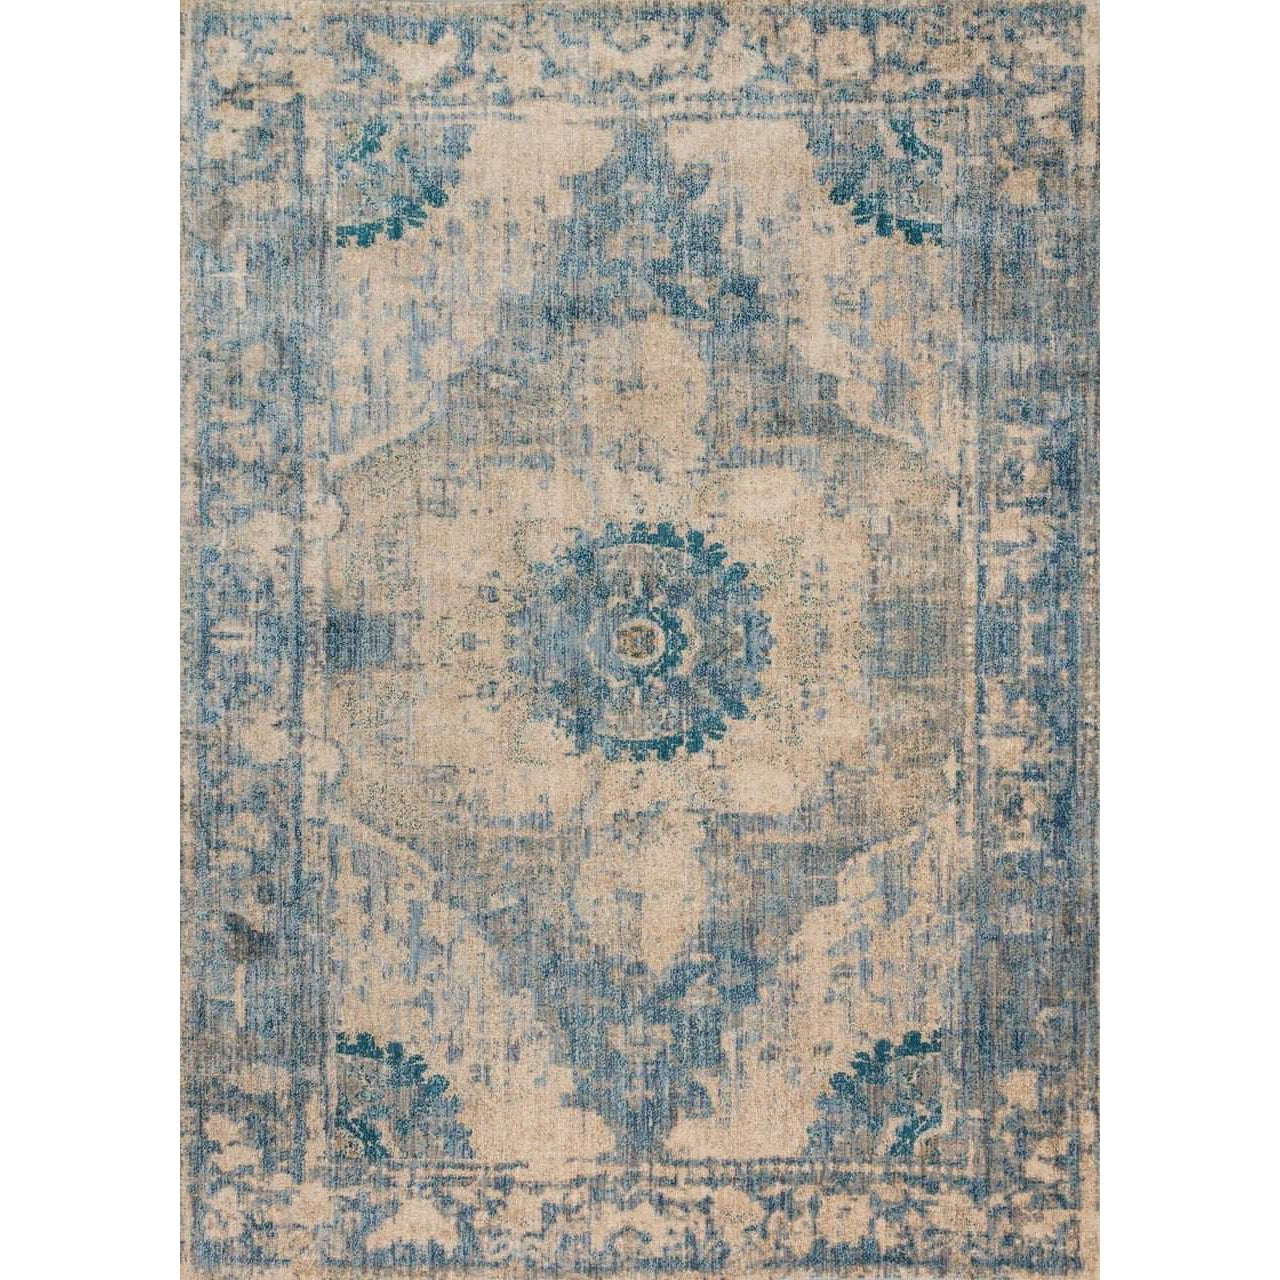 Joanna Gaines Rugs of Magnolia Home Rug Collection - Kivi Collection - Sand / Sky - Blue Hand Home